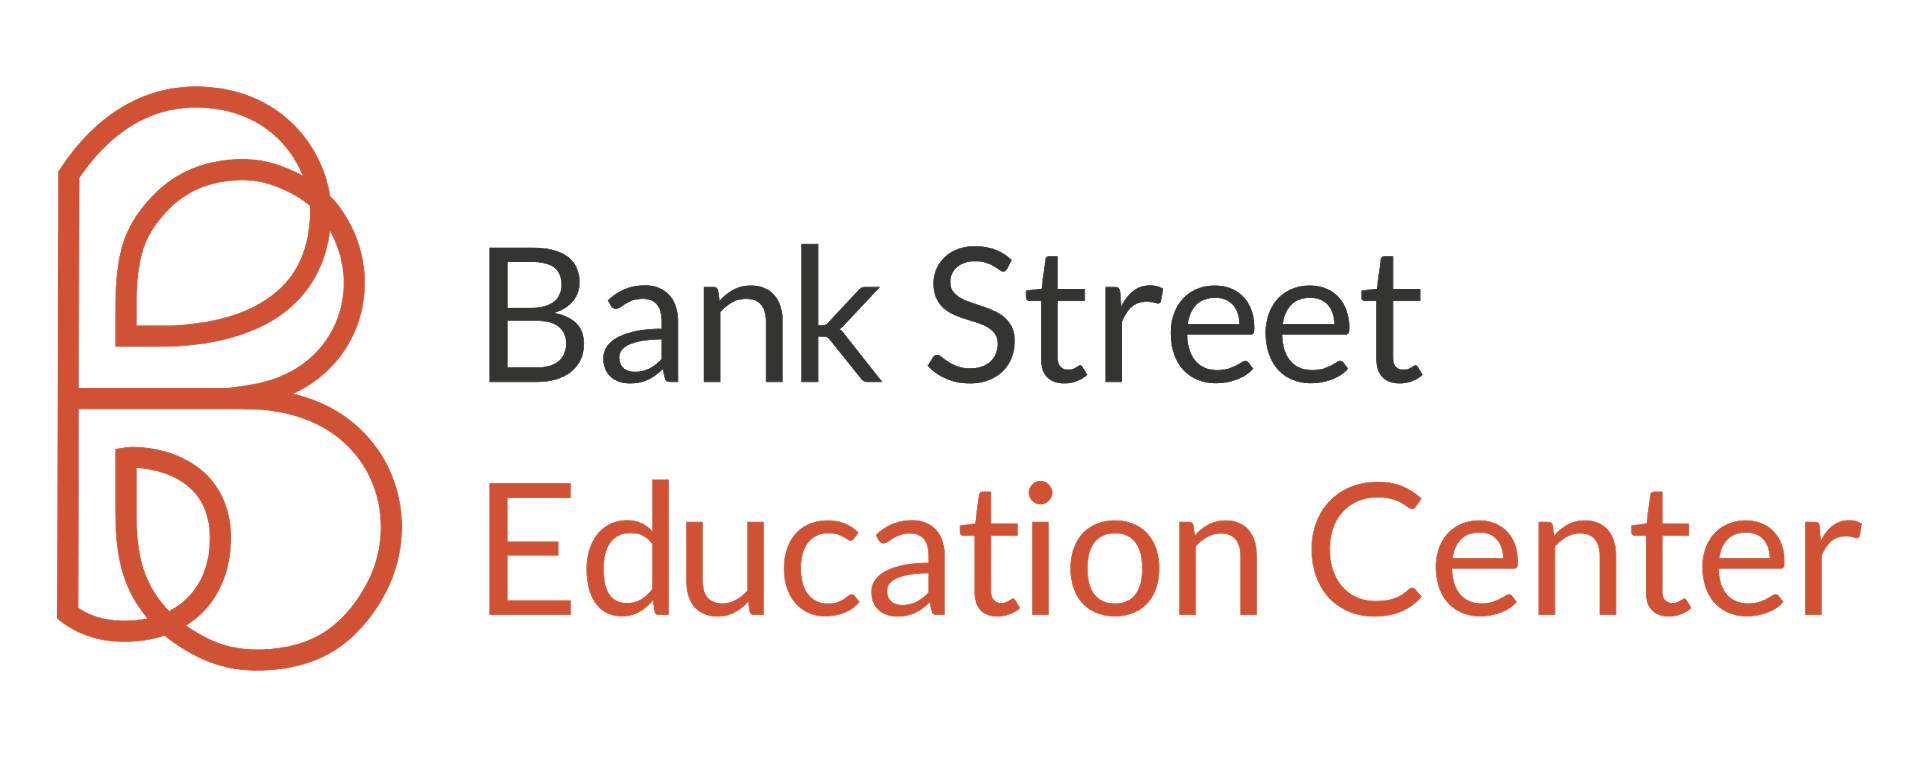 Bank Street Education Center